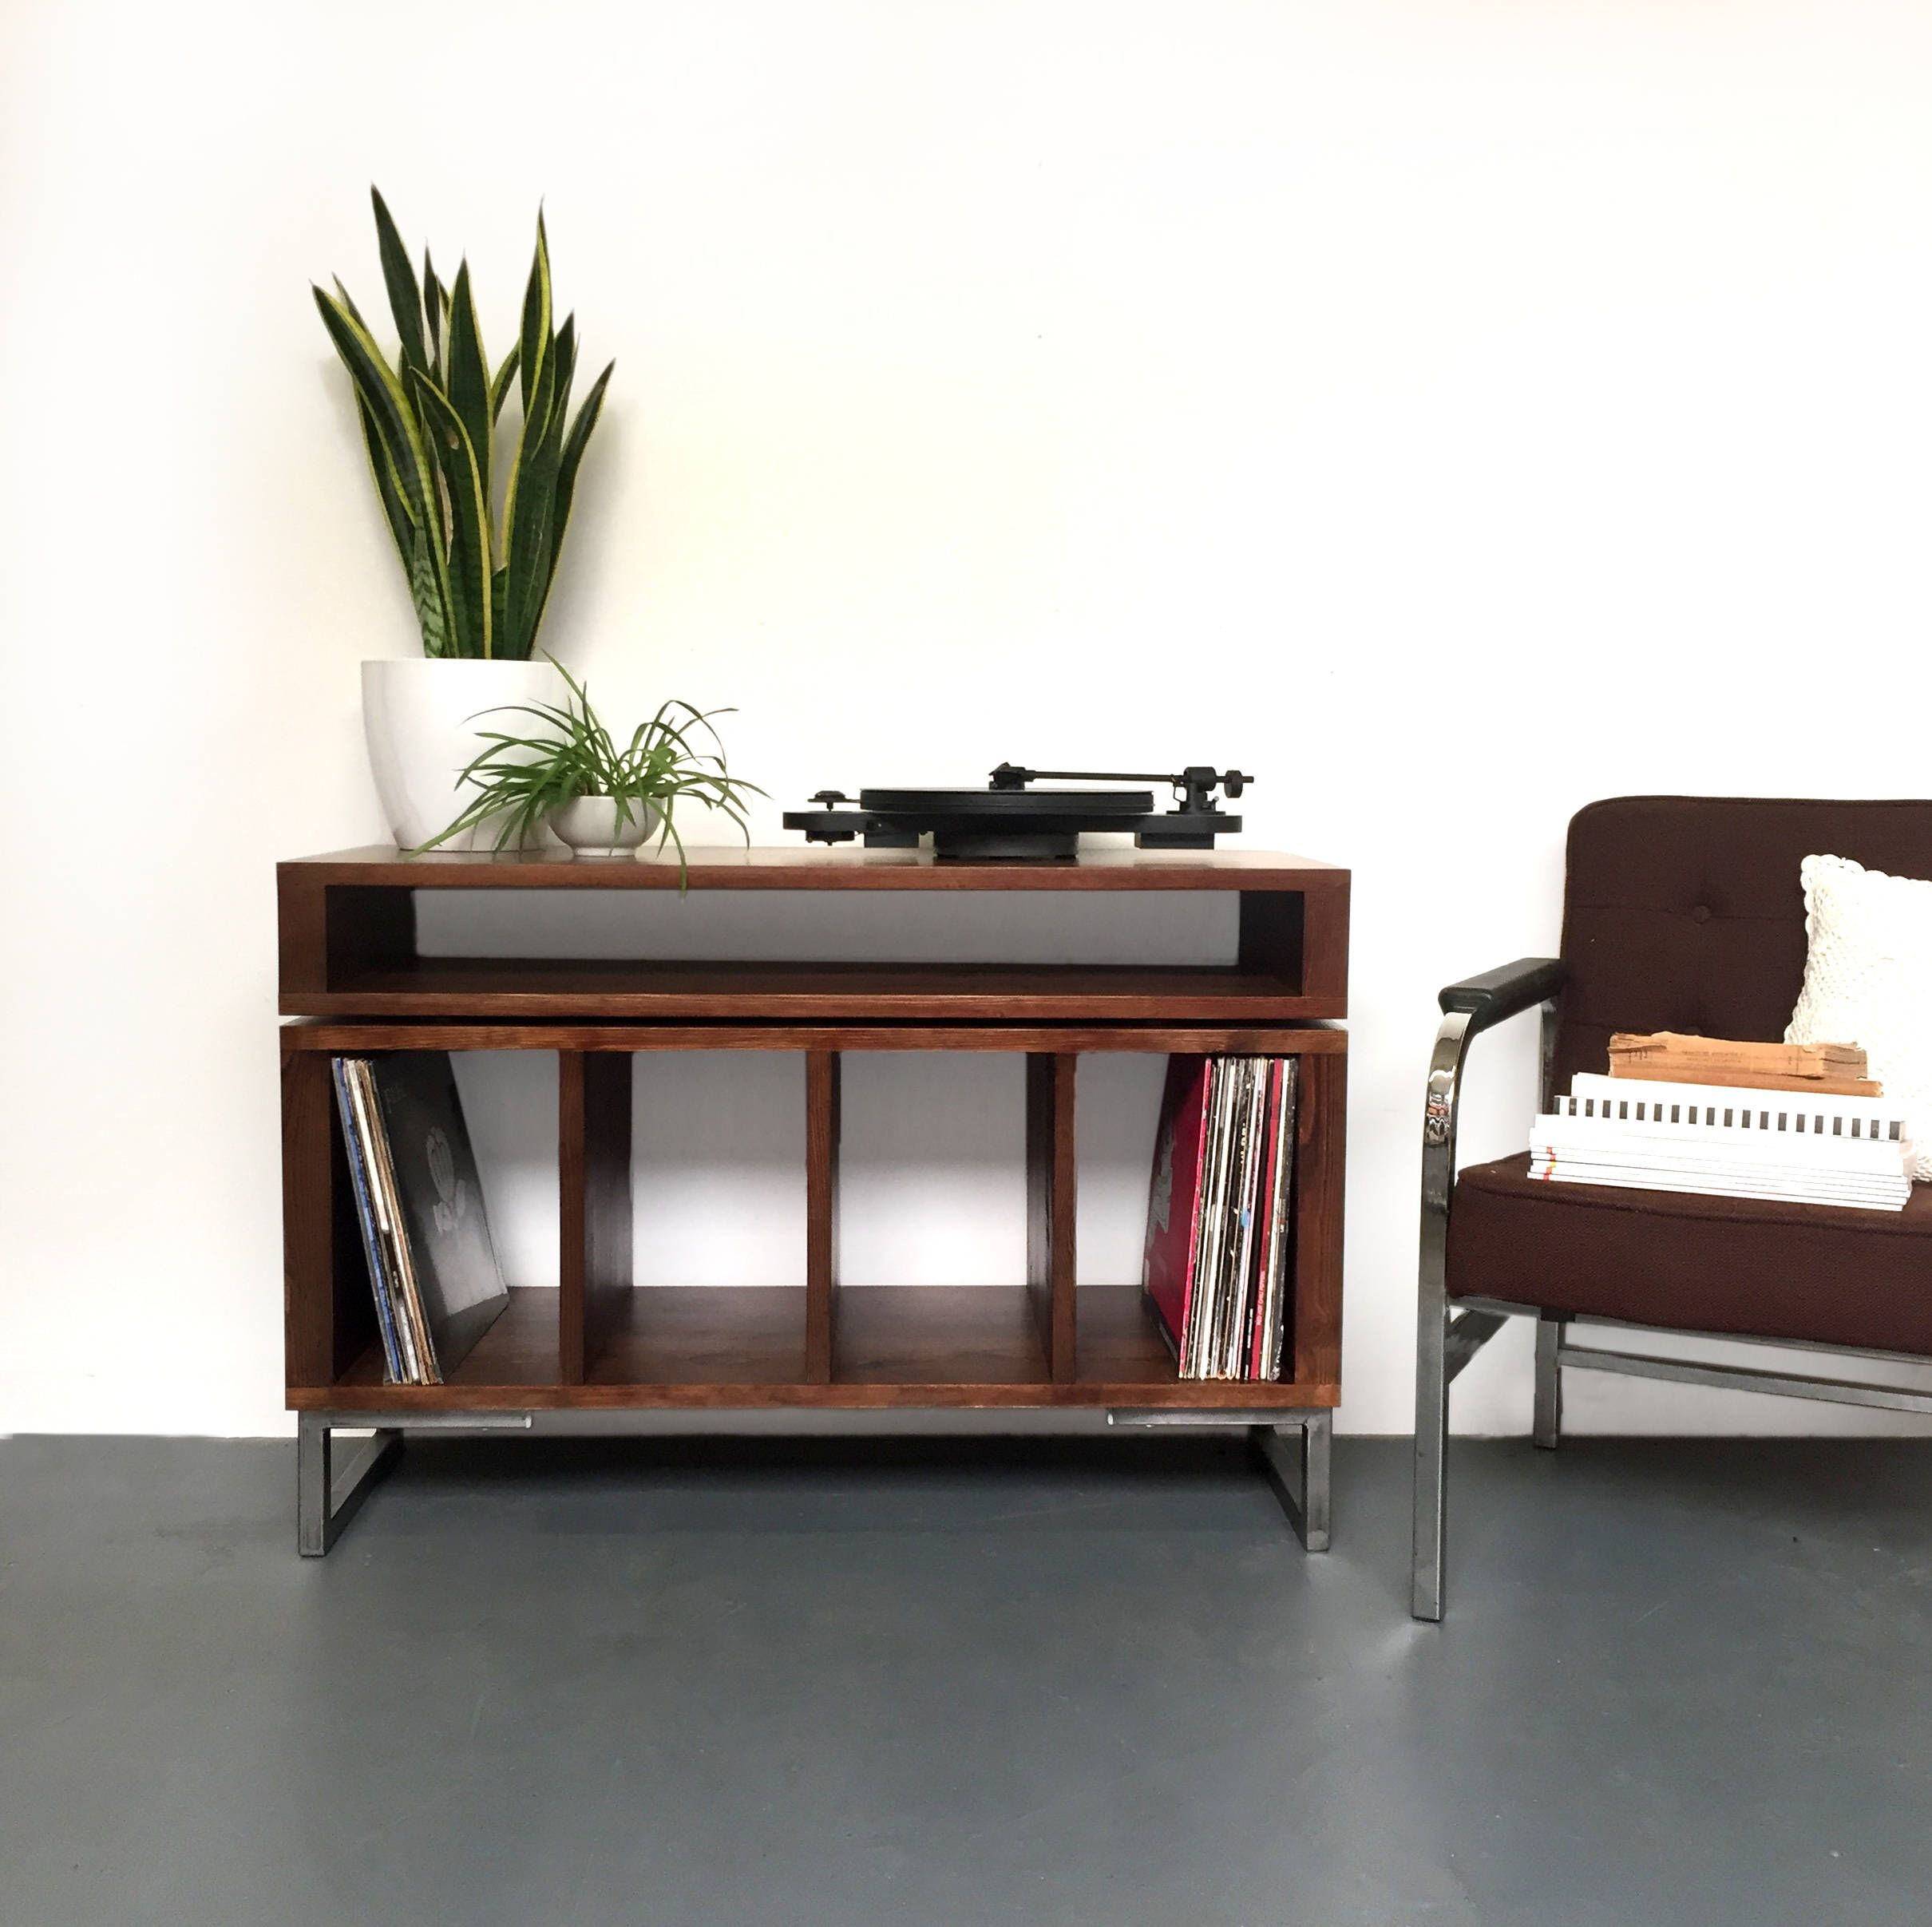 Condor Stacked Media Console, Vinyl Record Storage, Solid Wood on ...